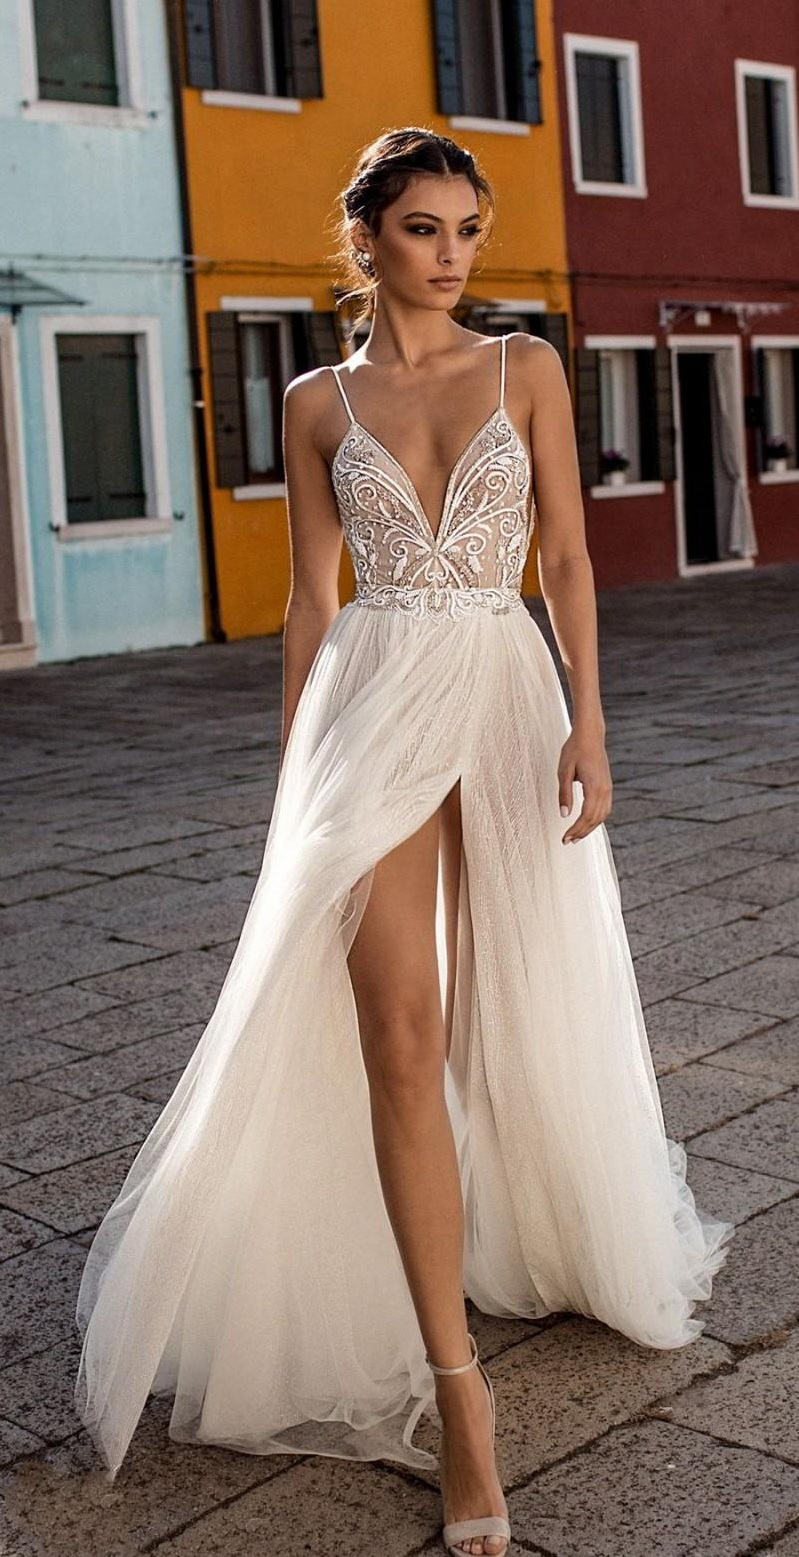 High split wedding dress